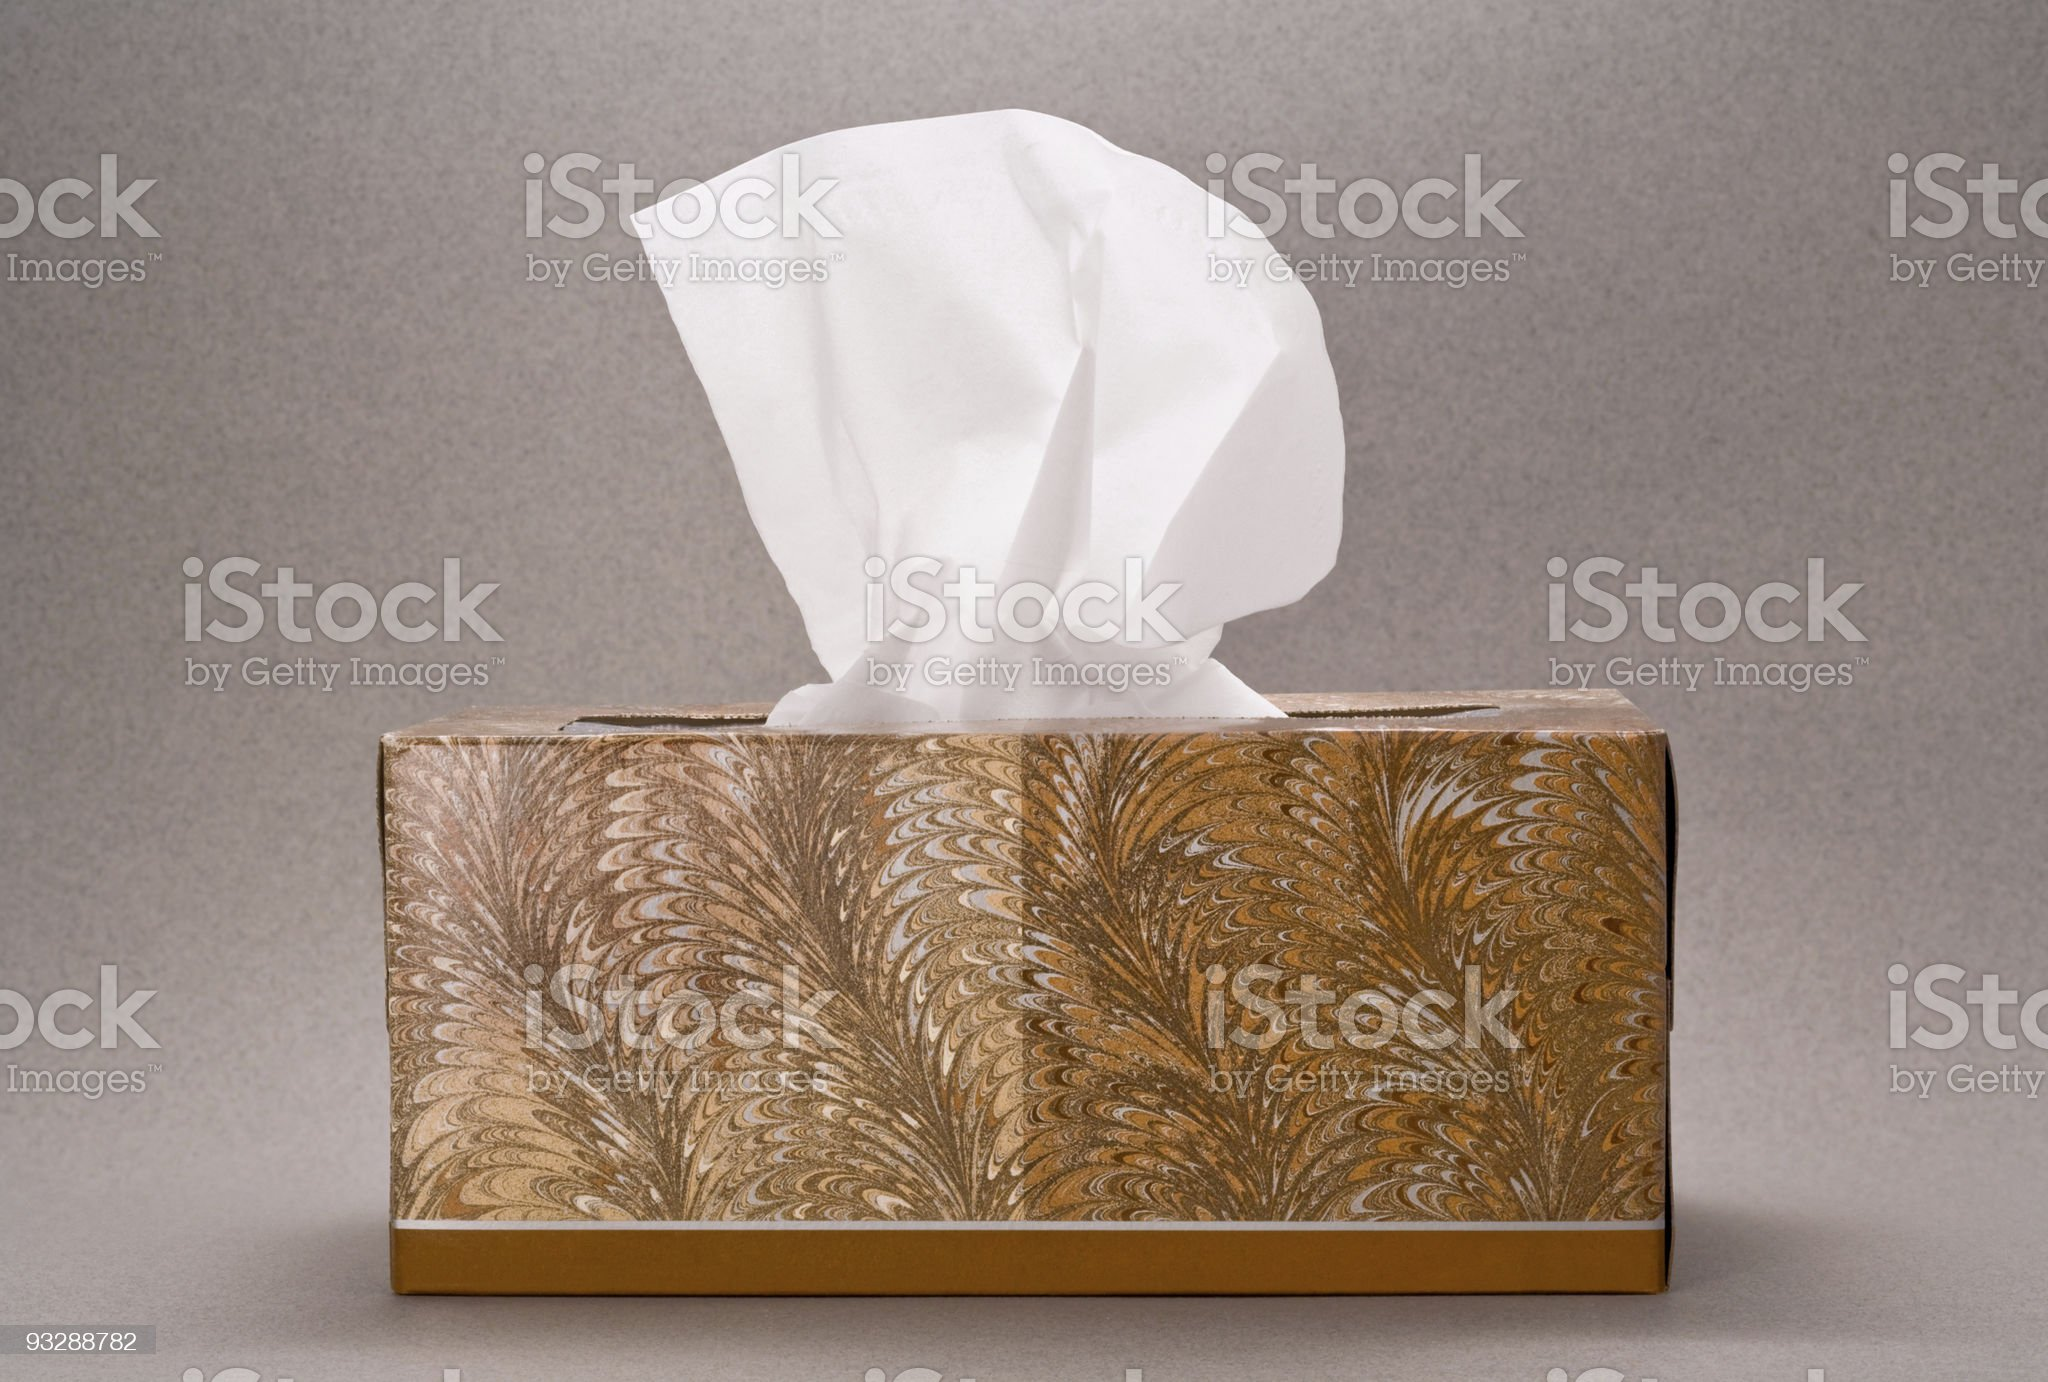 Box of Tissue royalty-free stock photo